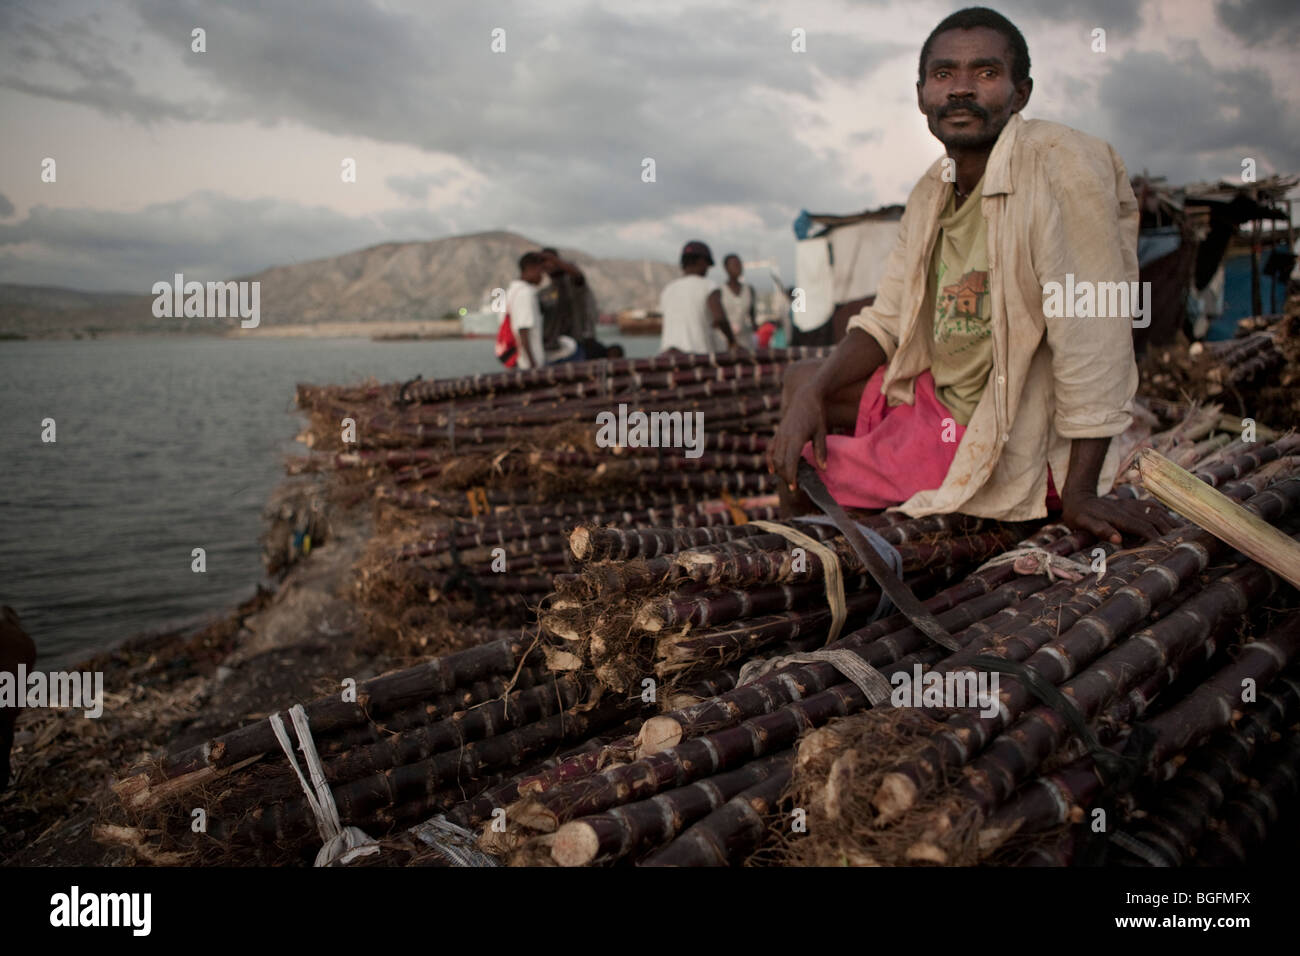 A dock worker sits on top of bundles of sugarcane at the port Gonaives, Artibonite Department, Haiti - Stock Image